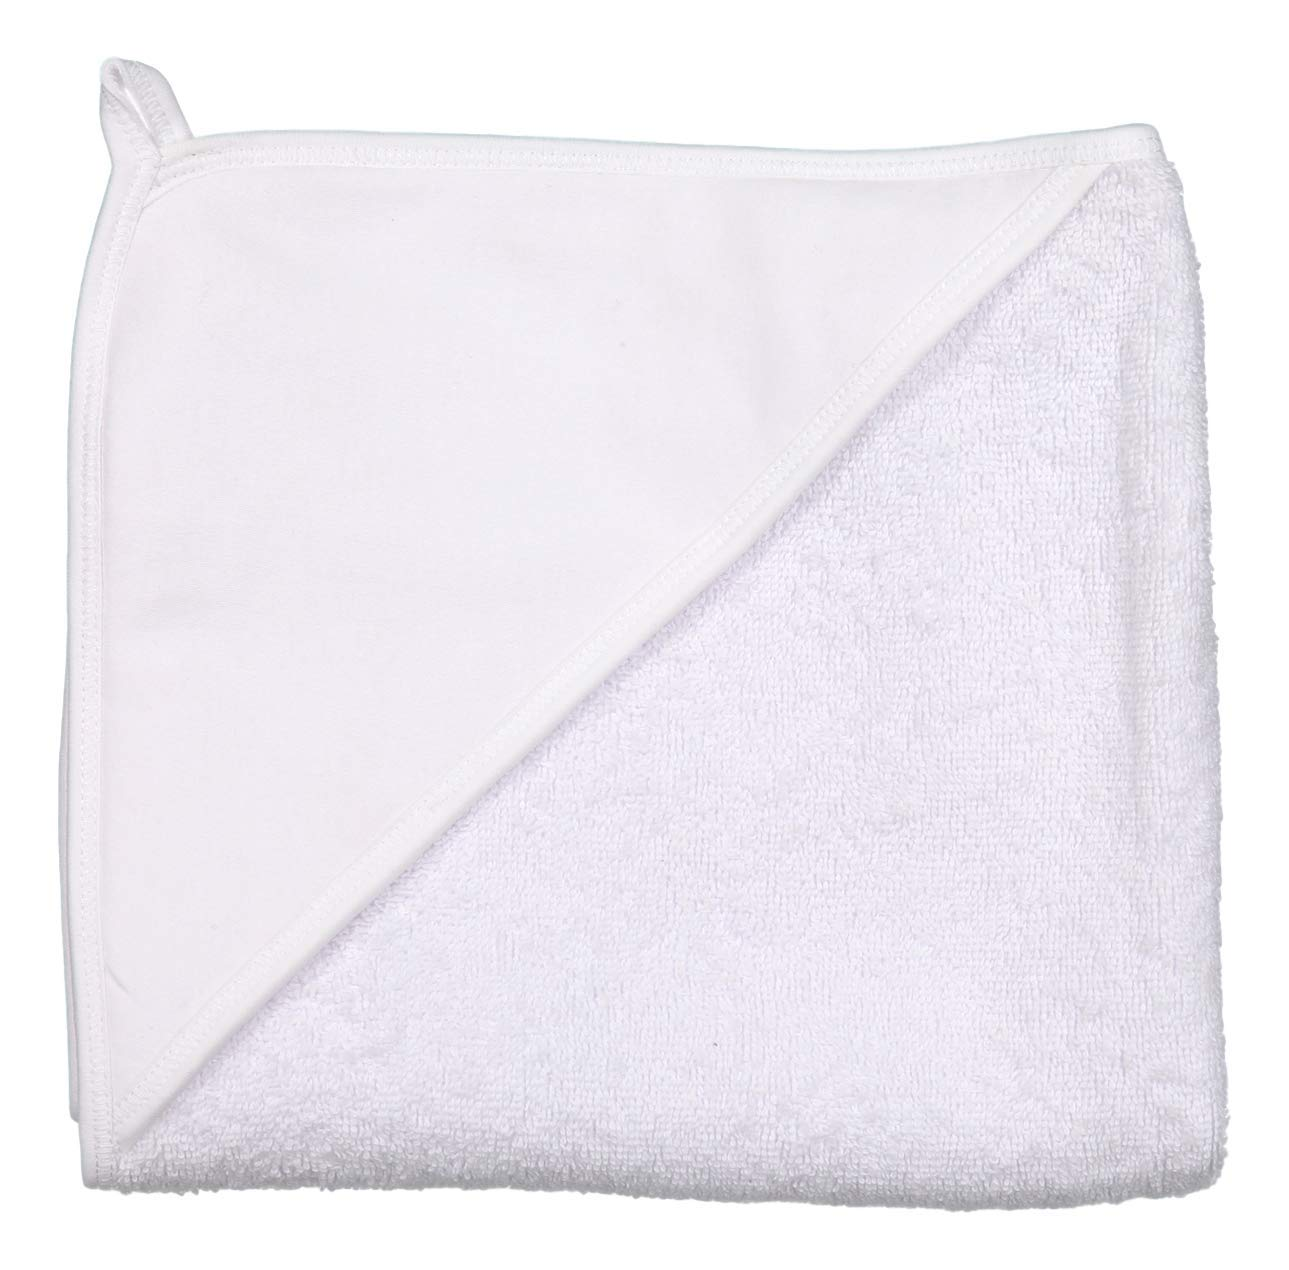 giggle Terry Towel - Pure White - Soft Hooded Baby Bath Wrap by giggle